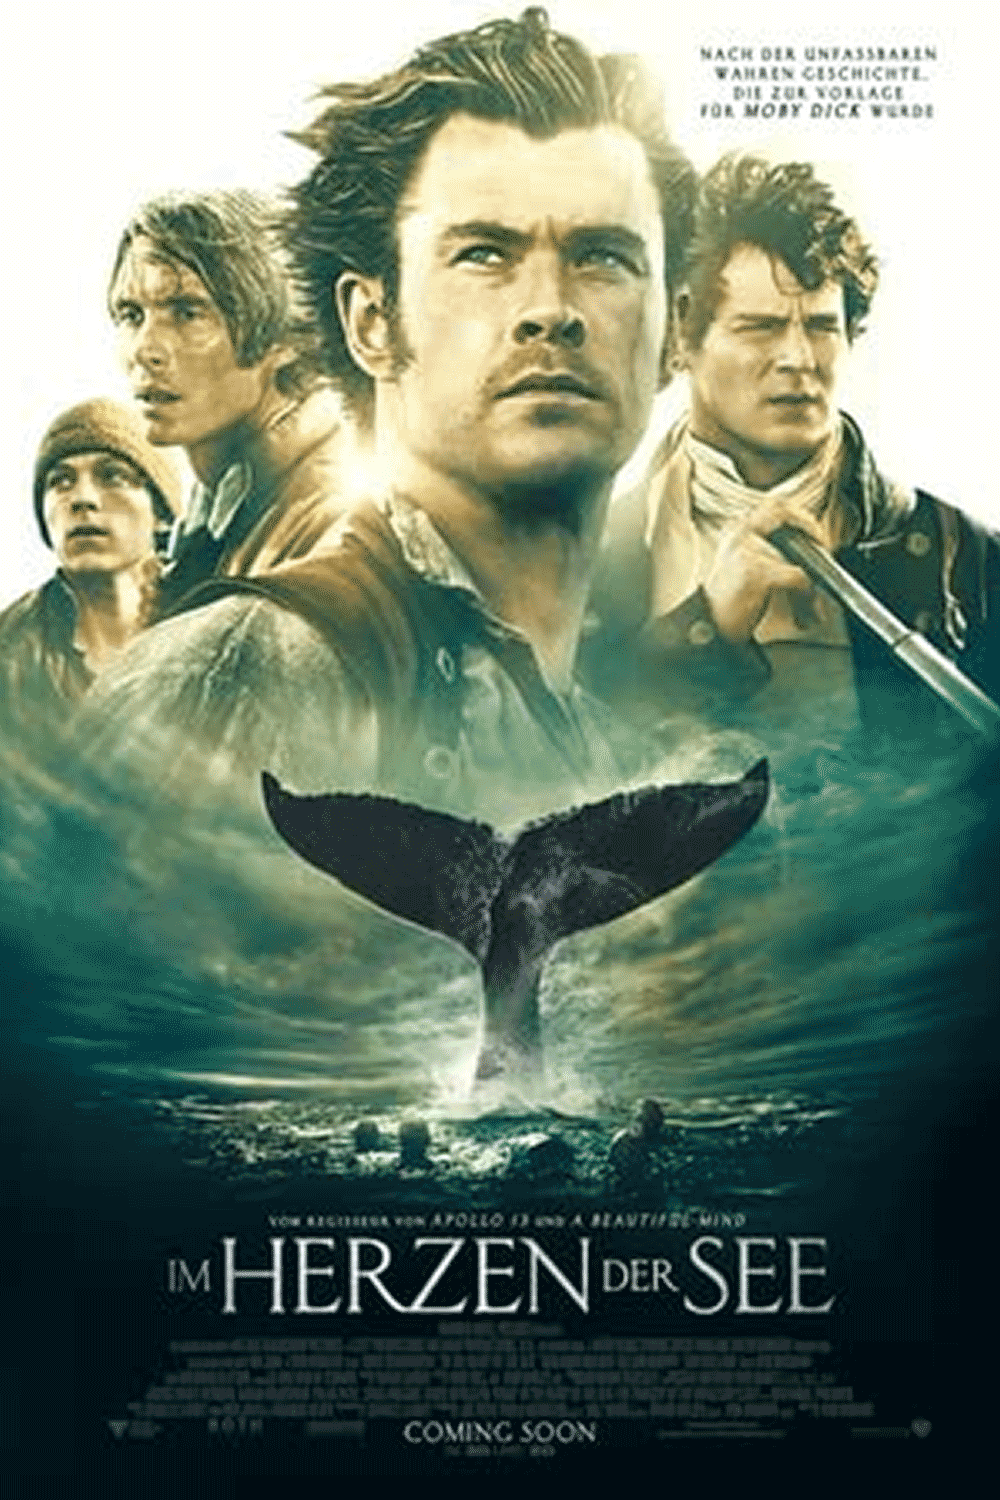 20 Best Wilderness Survival Movies On Netflix Amazon In The Heart Of The Sea Adventure Movies Survival Movie Adventure Movies The Sea Movie